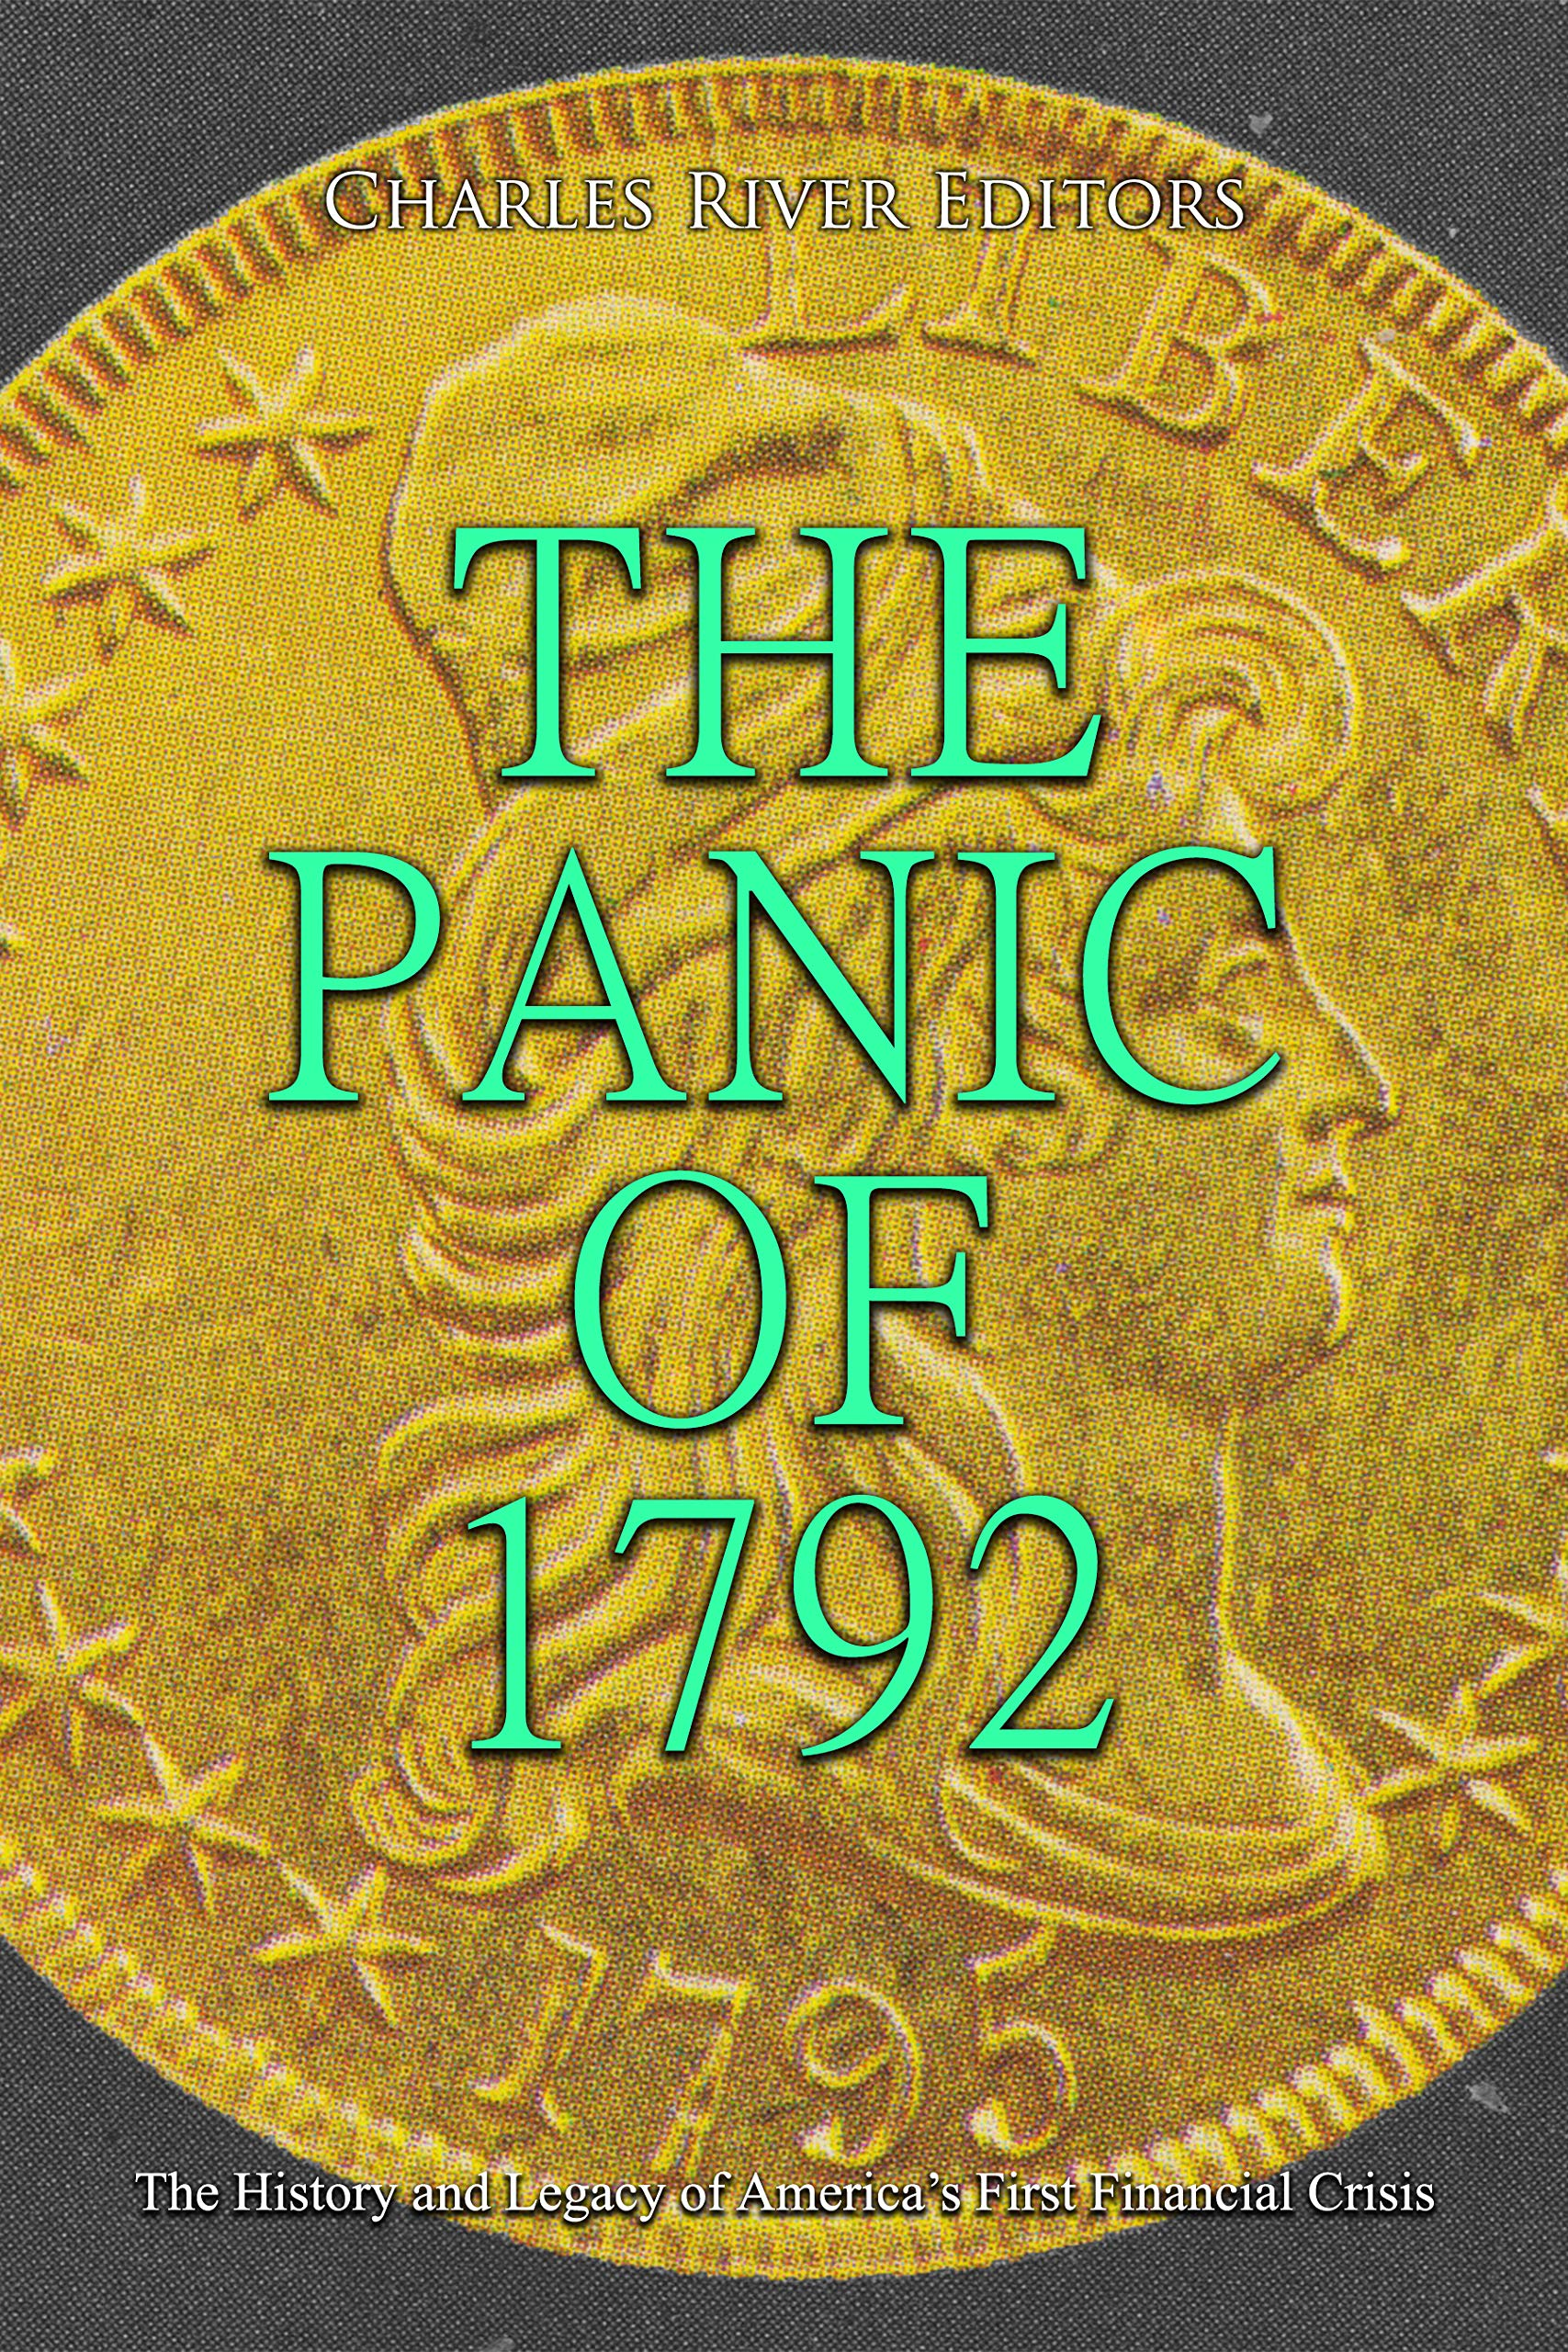 The Panic of 1792: The History and Legacy of America's First Financial Crisis